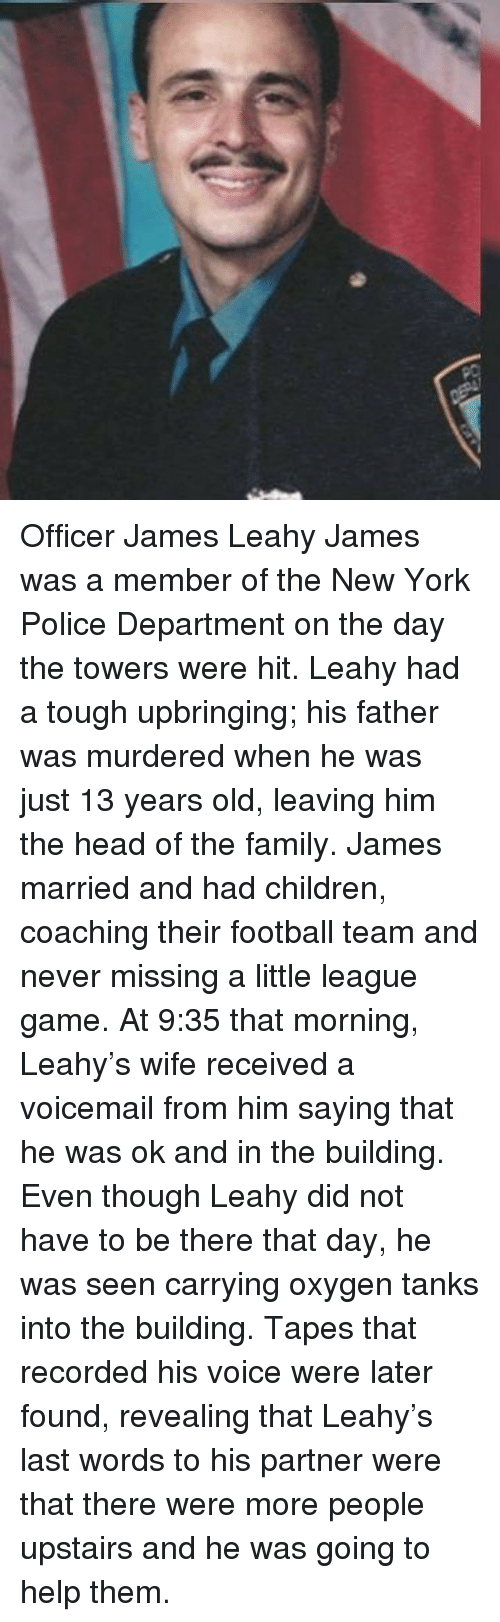 Coaching: Officer James Leahy James was a member of the New York Police Department on the day the towers were hit. Leahy had a tough upbringing; his father was murdered when he was just 13 years old, leaving him the head of the family. James married and had children, coaching their football team and never missing a little league game. At 9:35 that morning, Leahy's wife received a voicemail from him saying that he was ok and in the building. Even though Leahy did not have to be there that day, he was seen carrying oxygen tanks into the building. Tapes that recorded his voice were later found, revealing that Leahy's last words to his partner were that there were more people upstairs and he was going to help them.